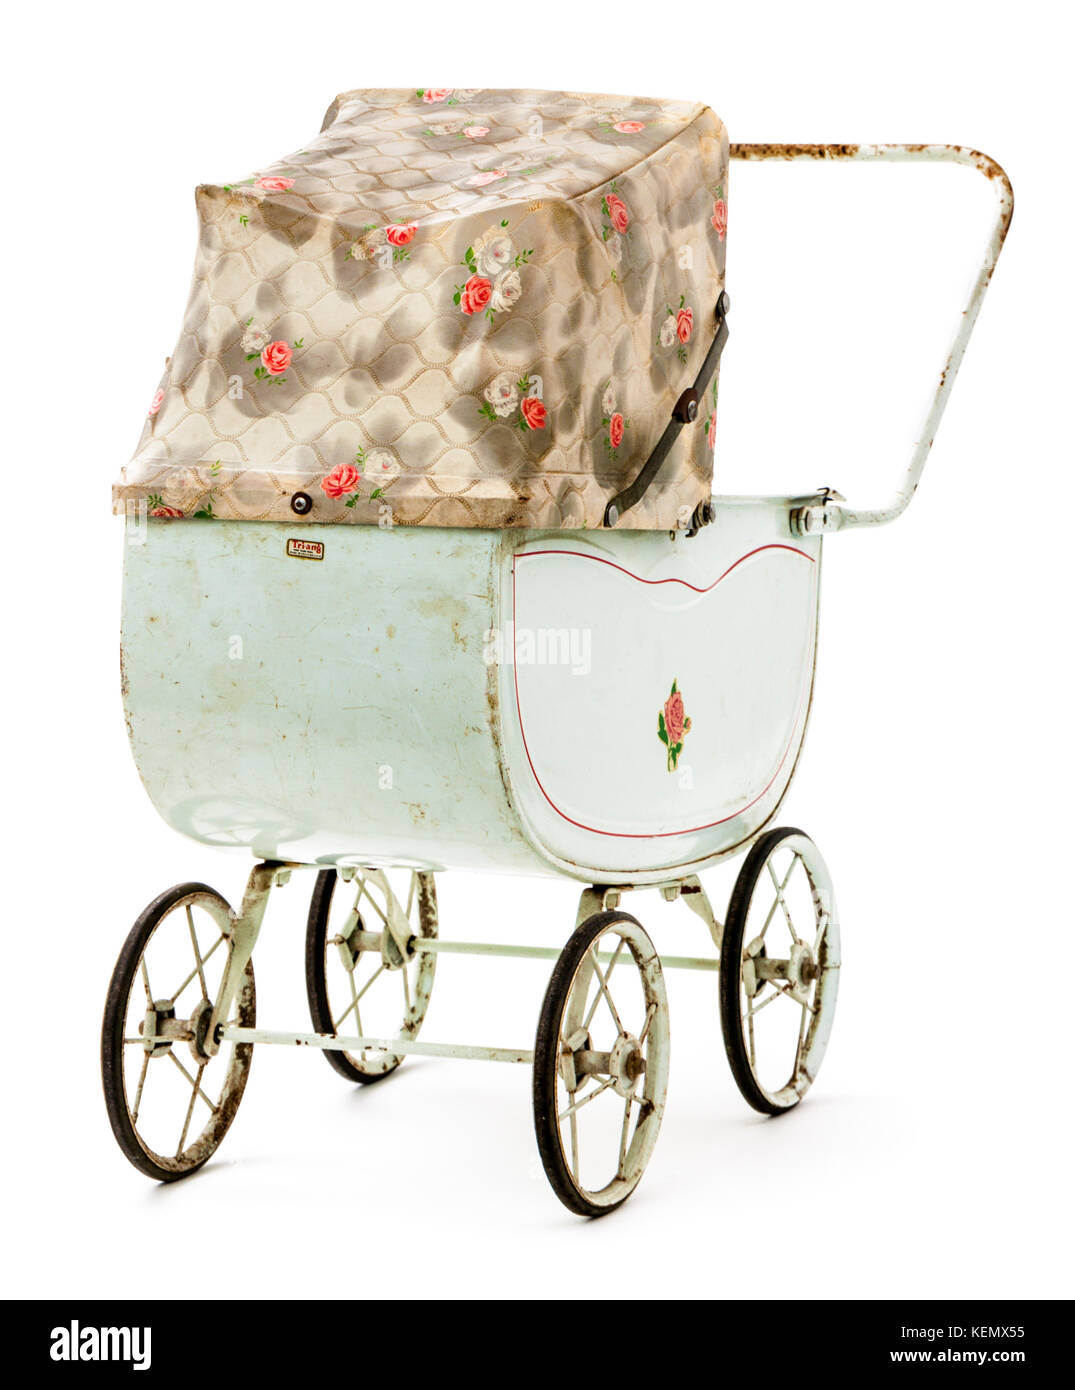 Vintage Toy Stroller Pram 1950s Stock Photos Pram 1950s Stock Images Alamy